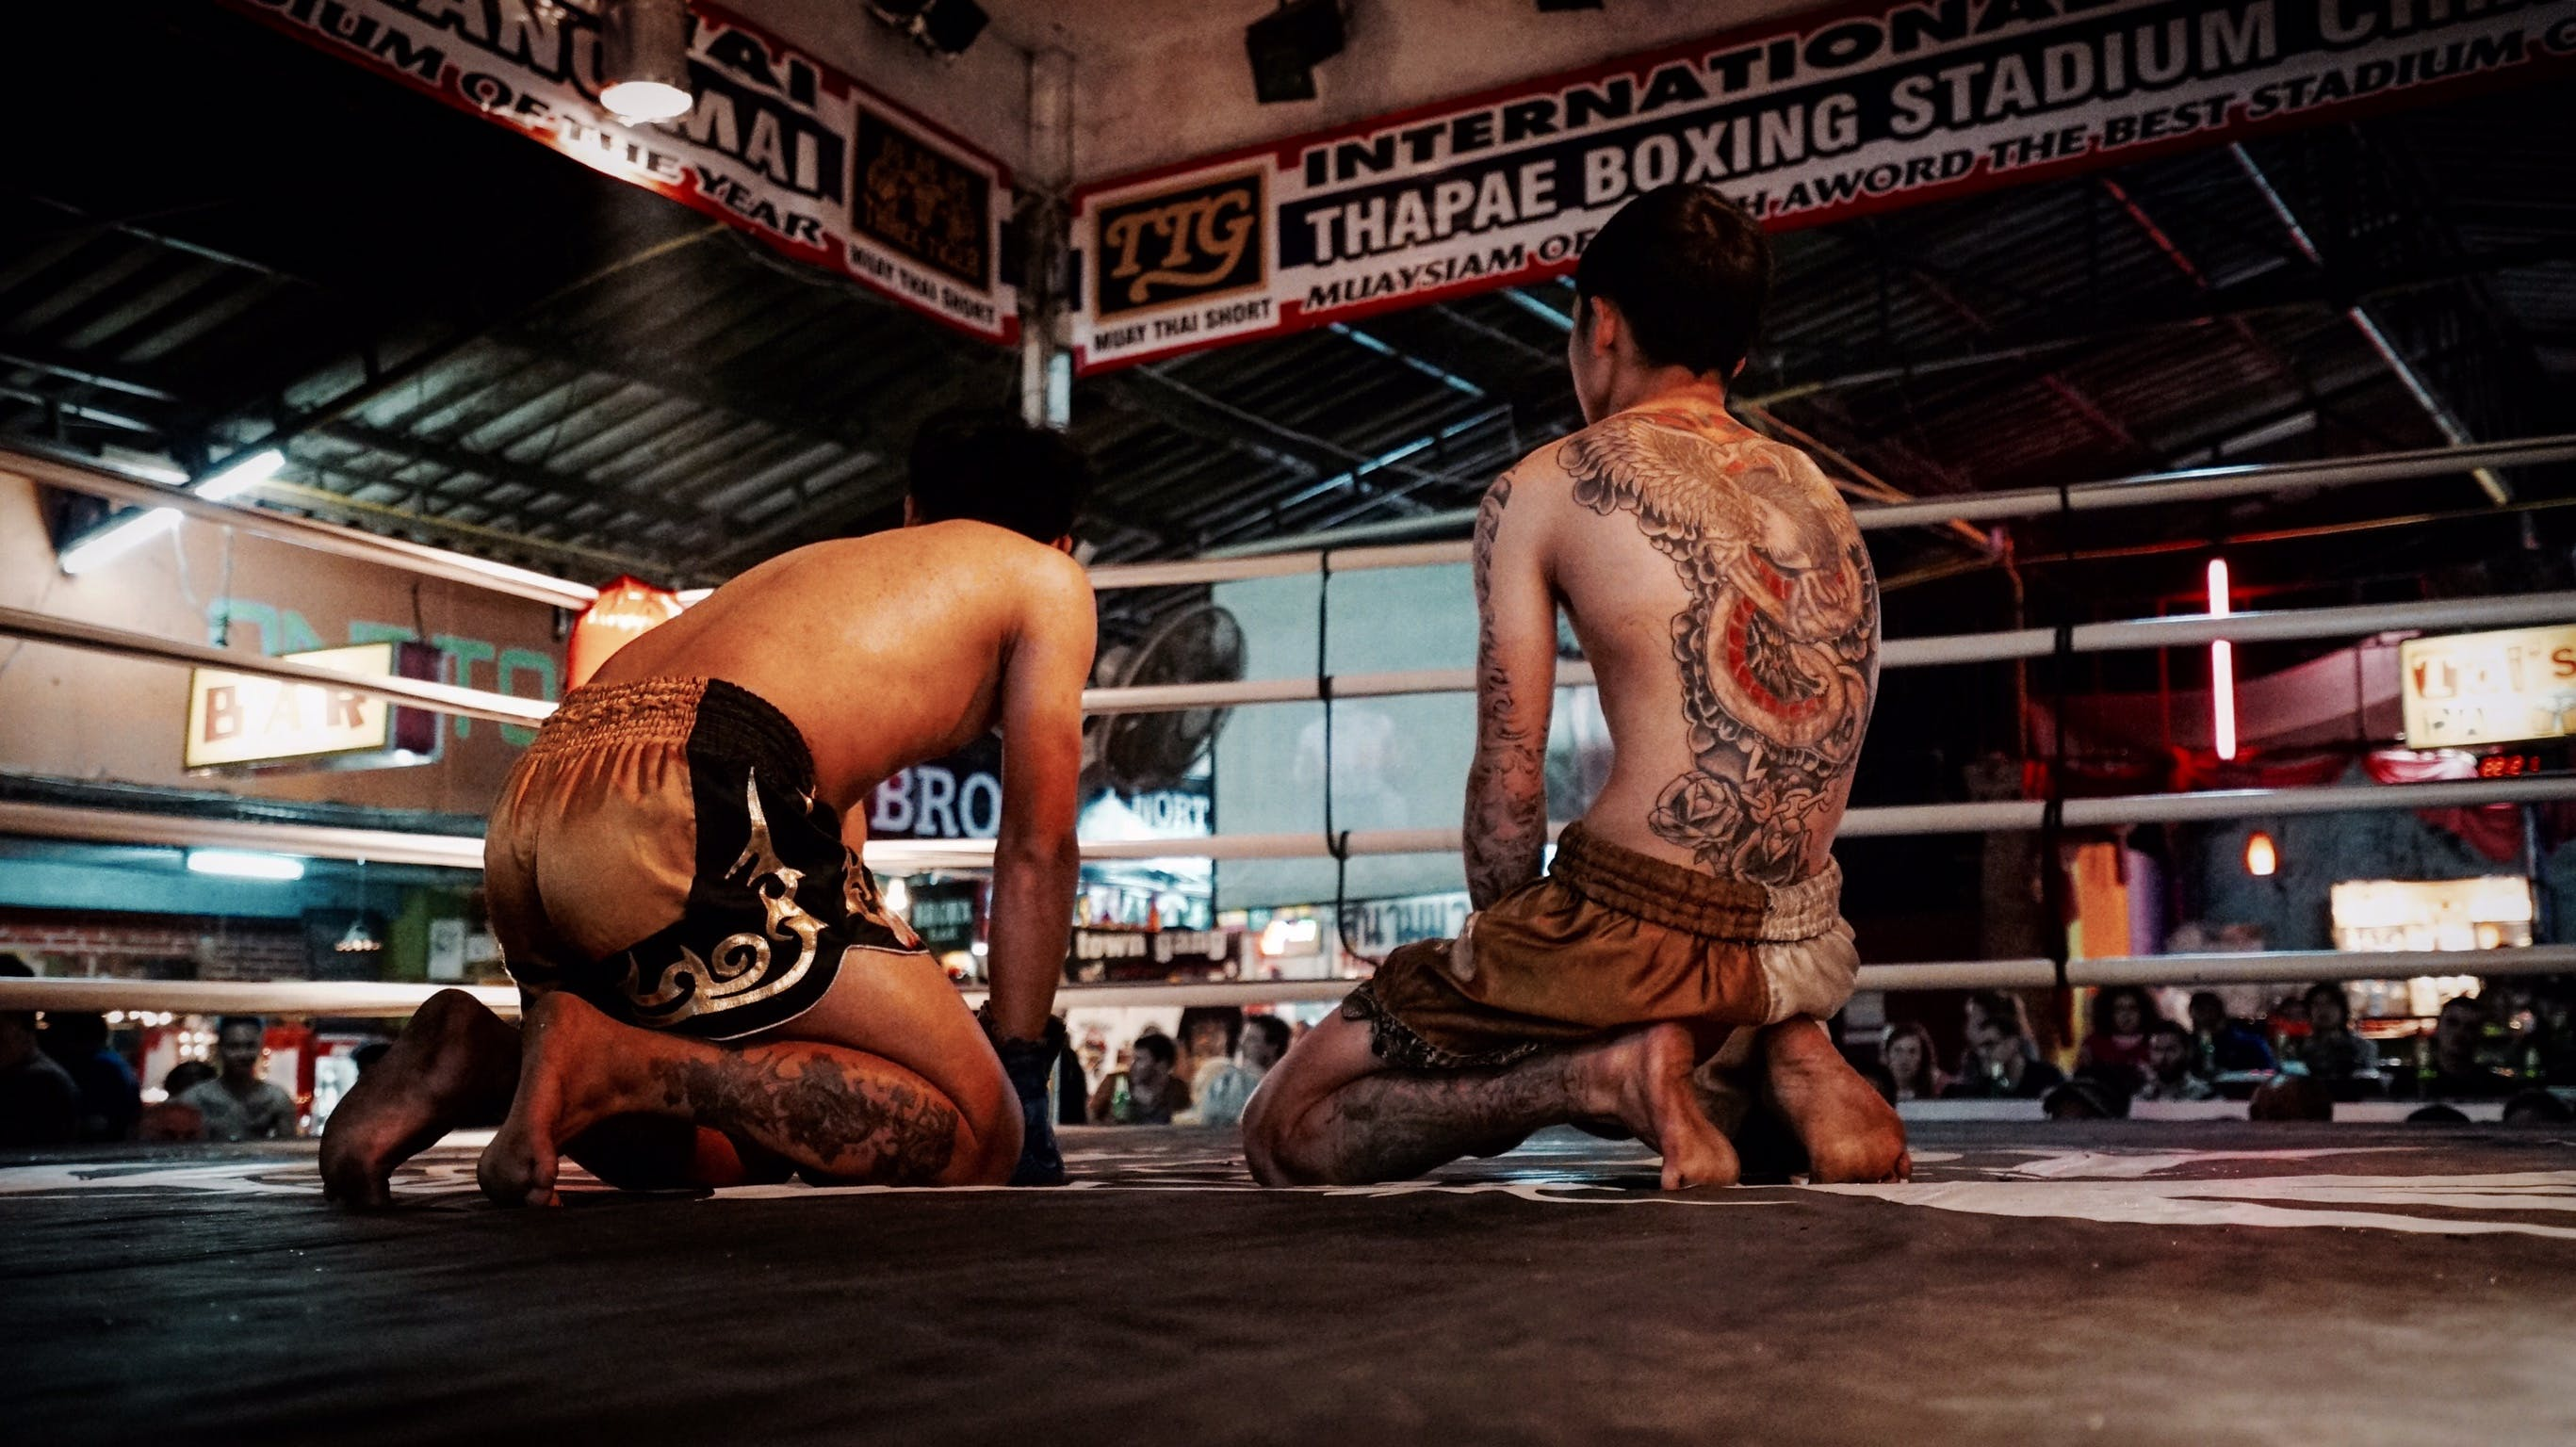 Man Kneeling on Boxing Ring